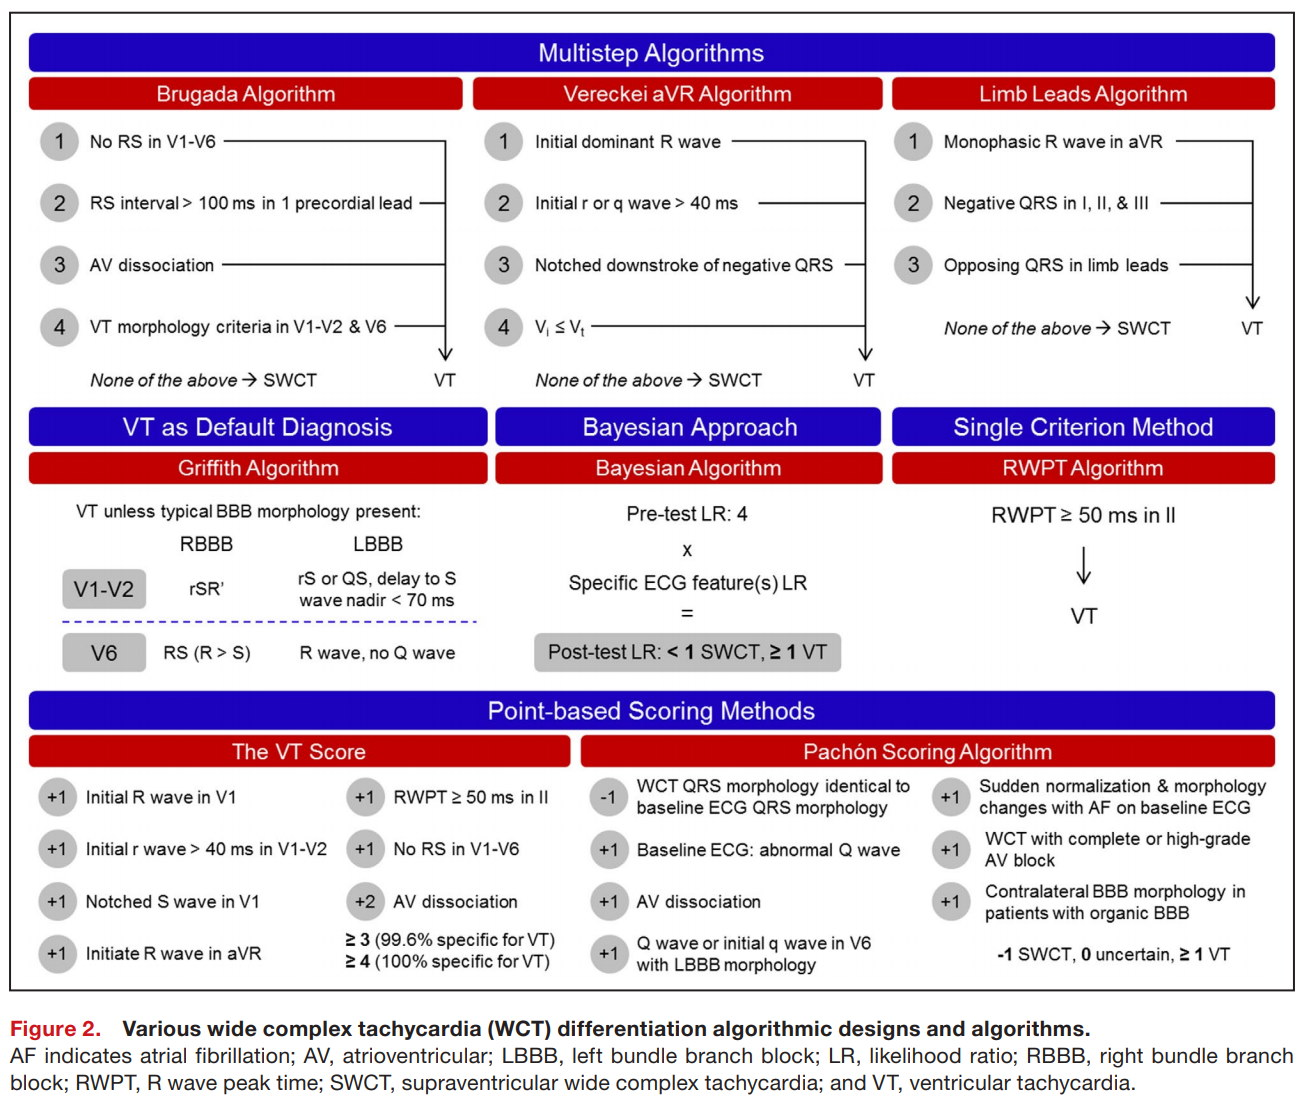 Various wide complex tachycardia (WCT) differentiation algorithmic designs and algorithms.